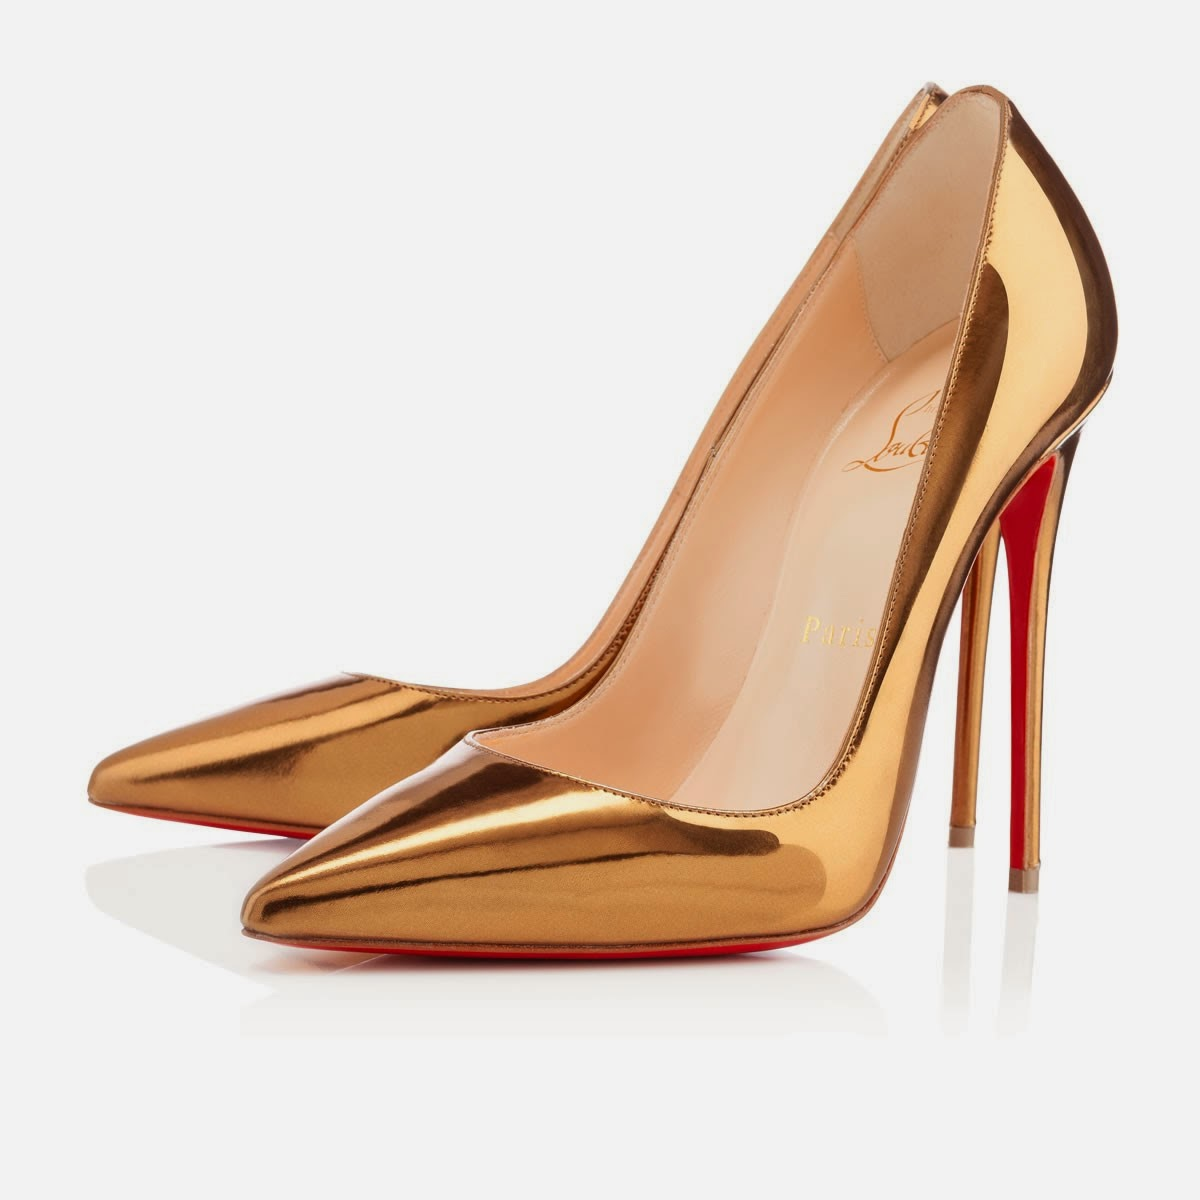 Christian Louboutin So Kate Gold Pumps